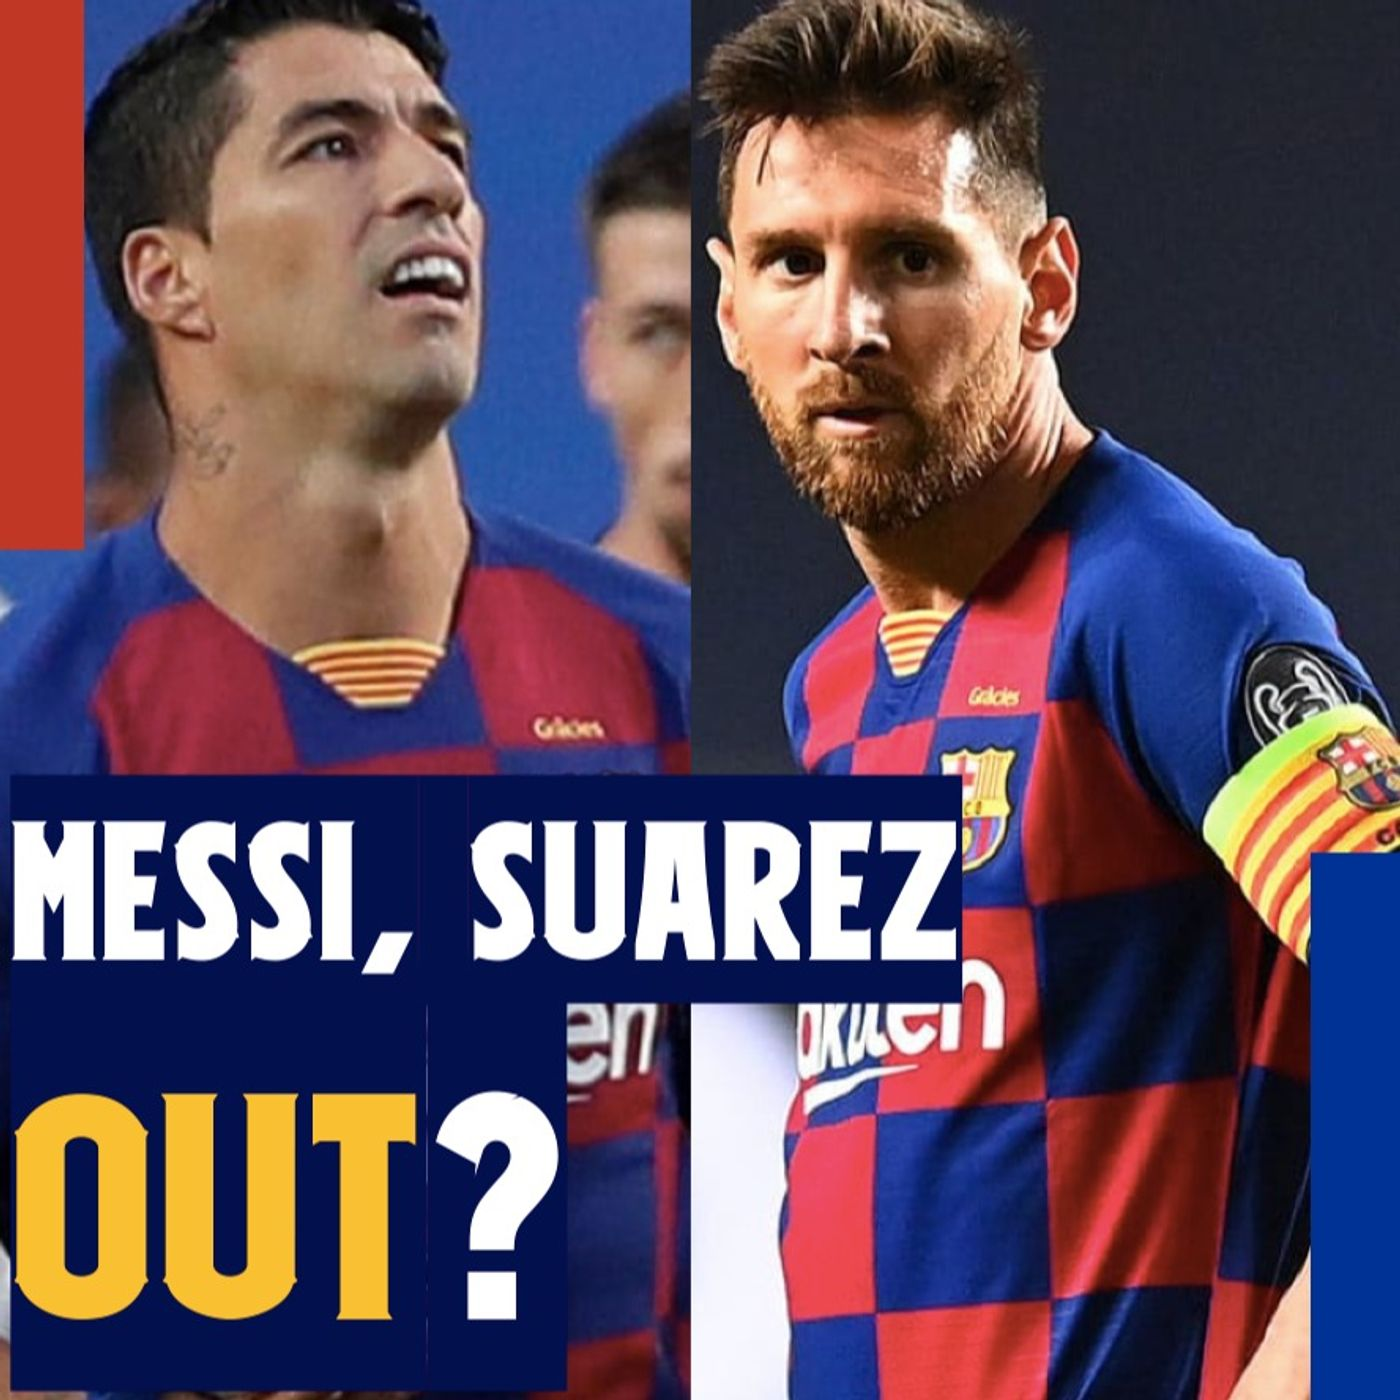 Messi and Suárez OUT? Koeman's clear-out and realistic transfers